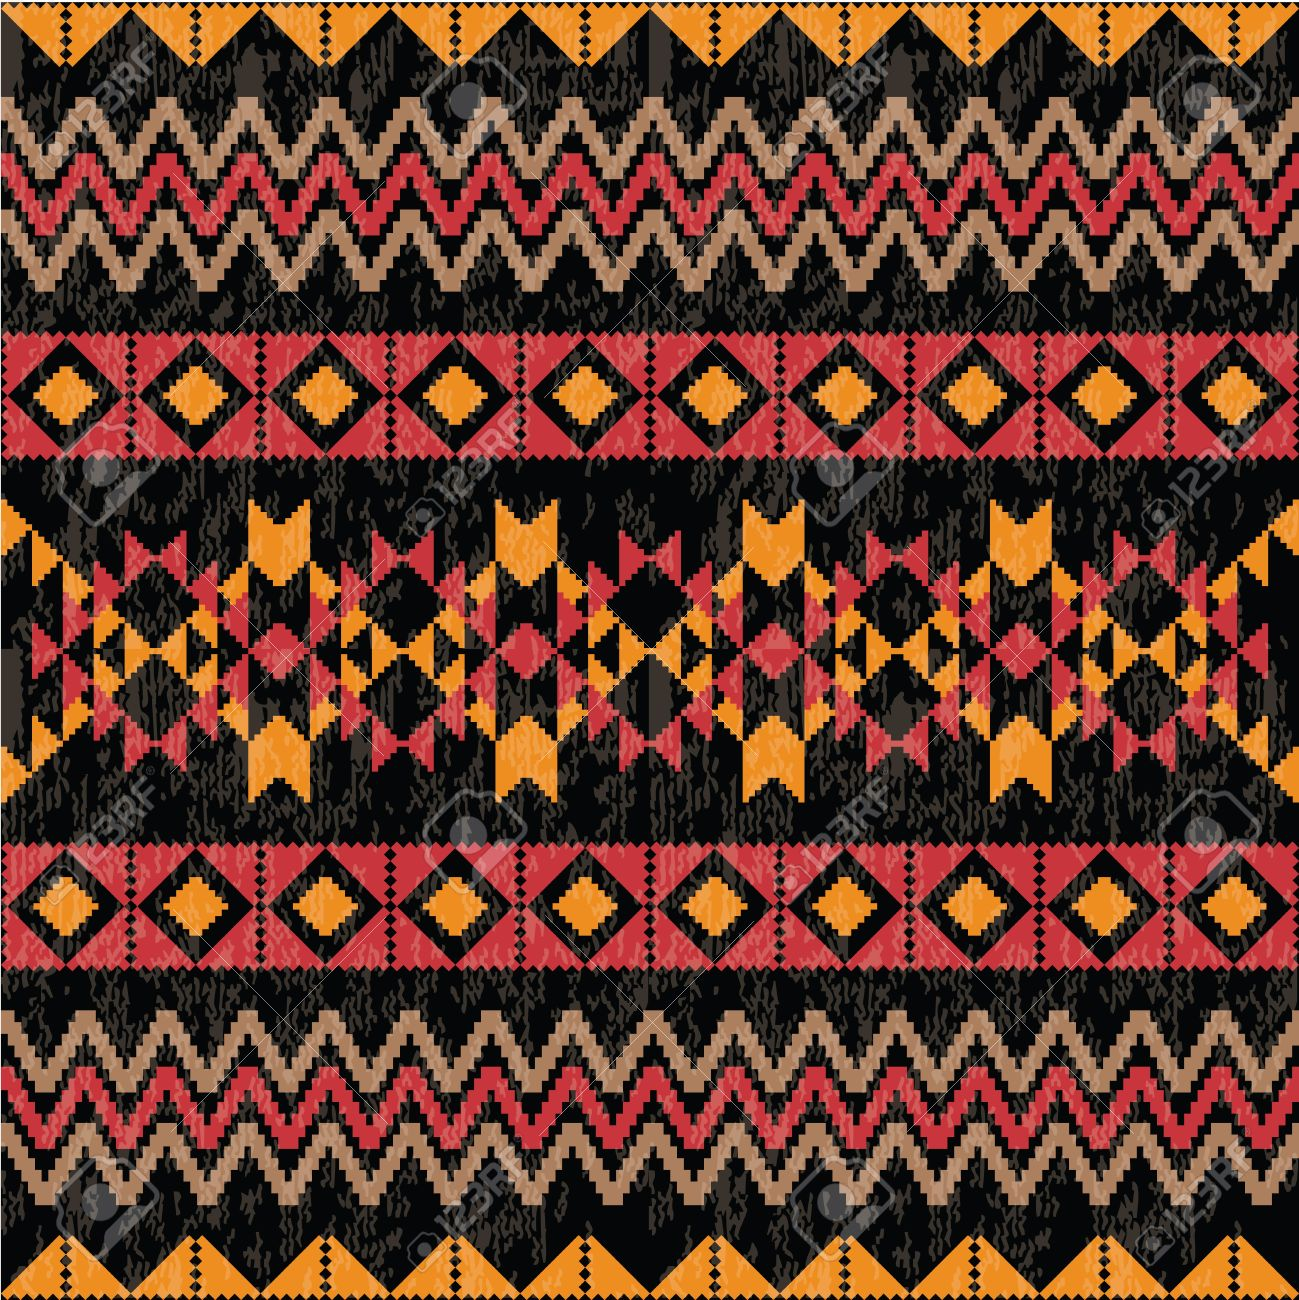 Iphone 5 Mario Wallpaper Download Native American Pattern Wallpaper Gallery